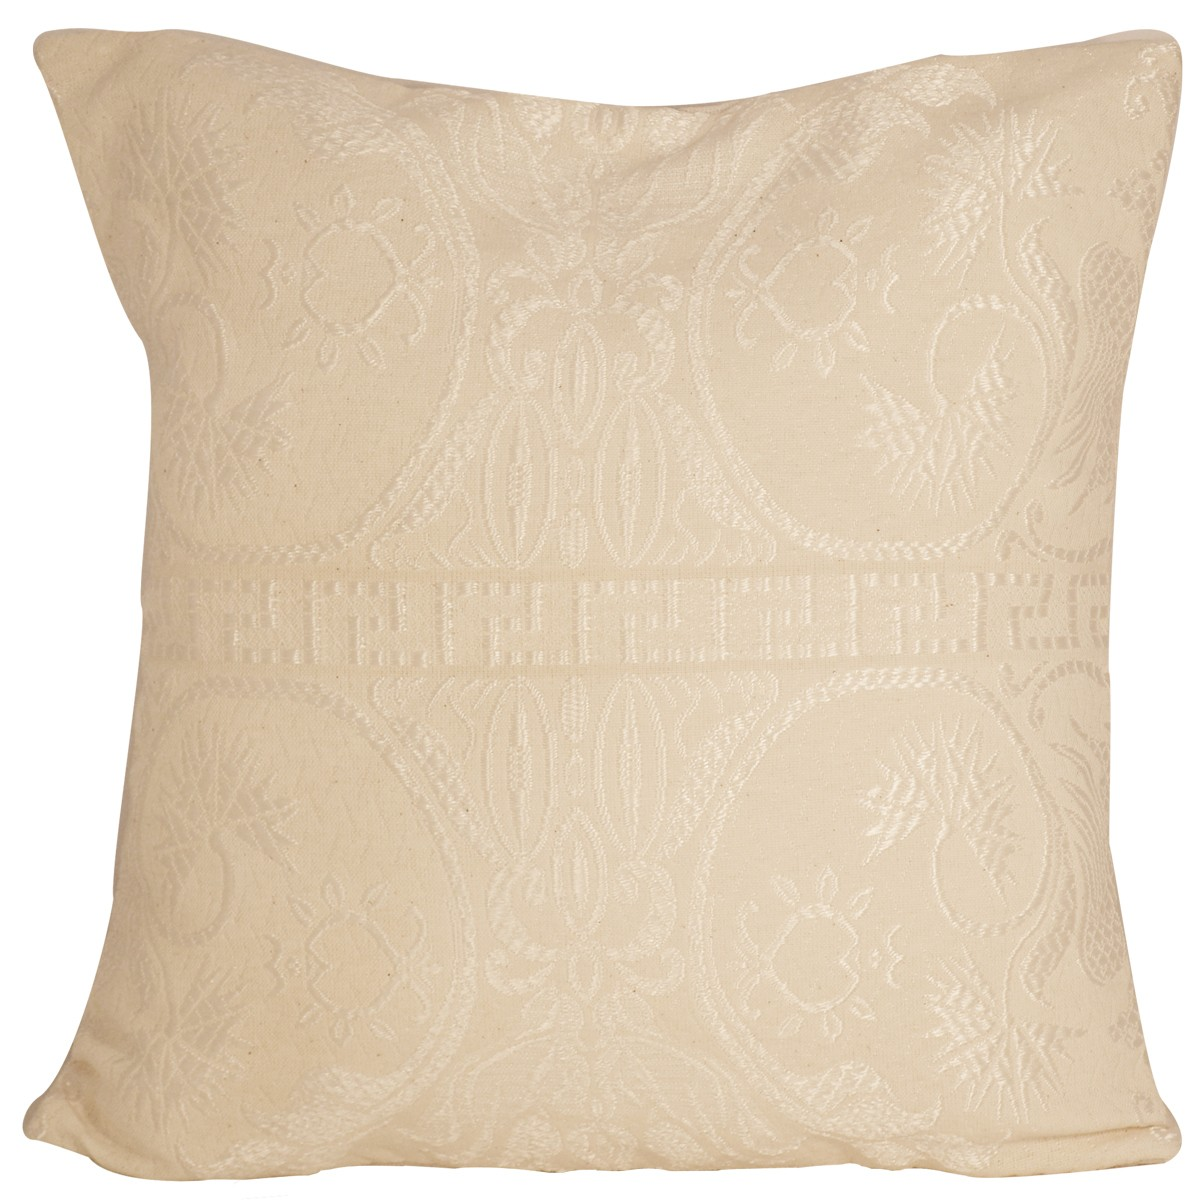 Two-headed Eagle Jacquard Cushion Cover